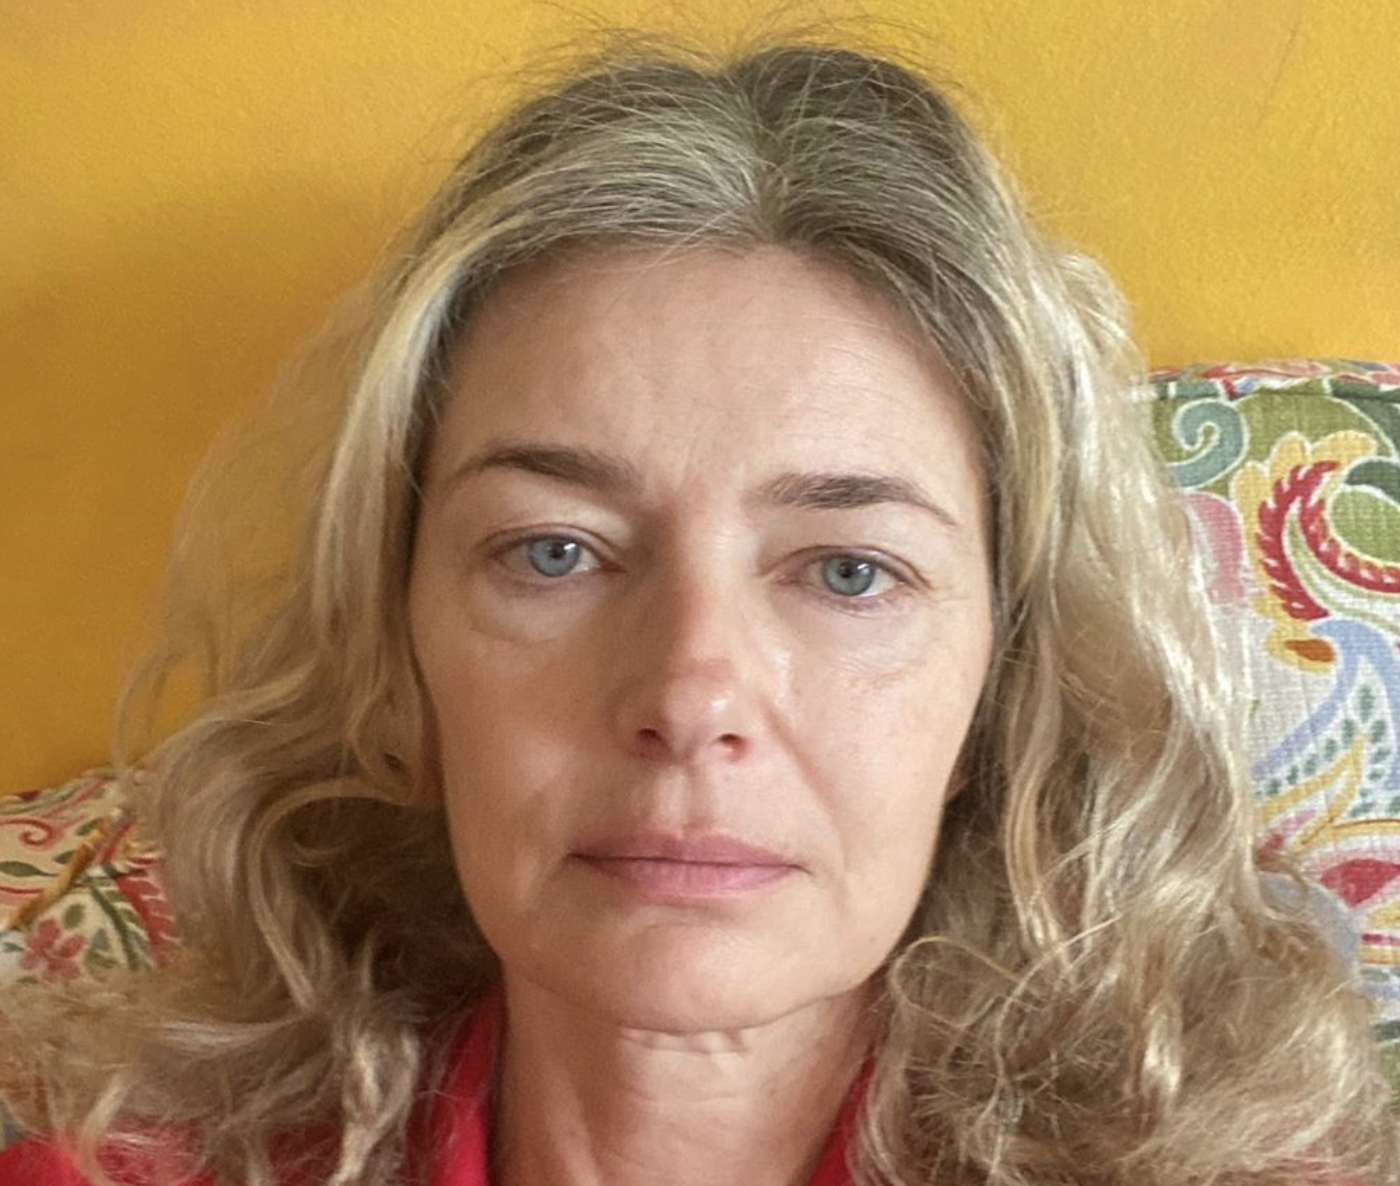 Paulina Porizkova shares unfiltered, makeup-free selfie: 'This is what I actually look like'